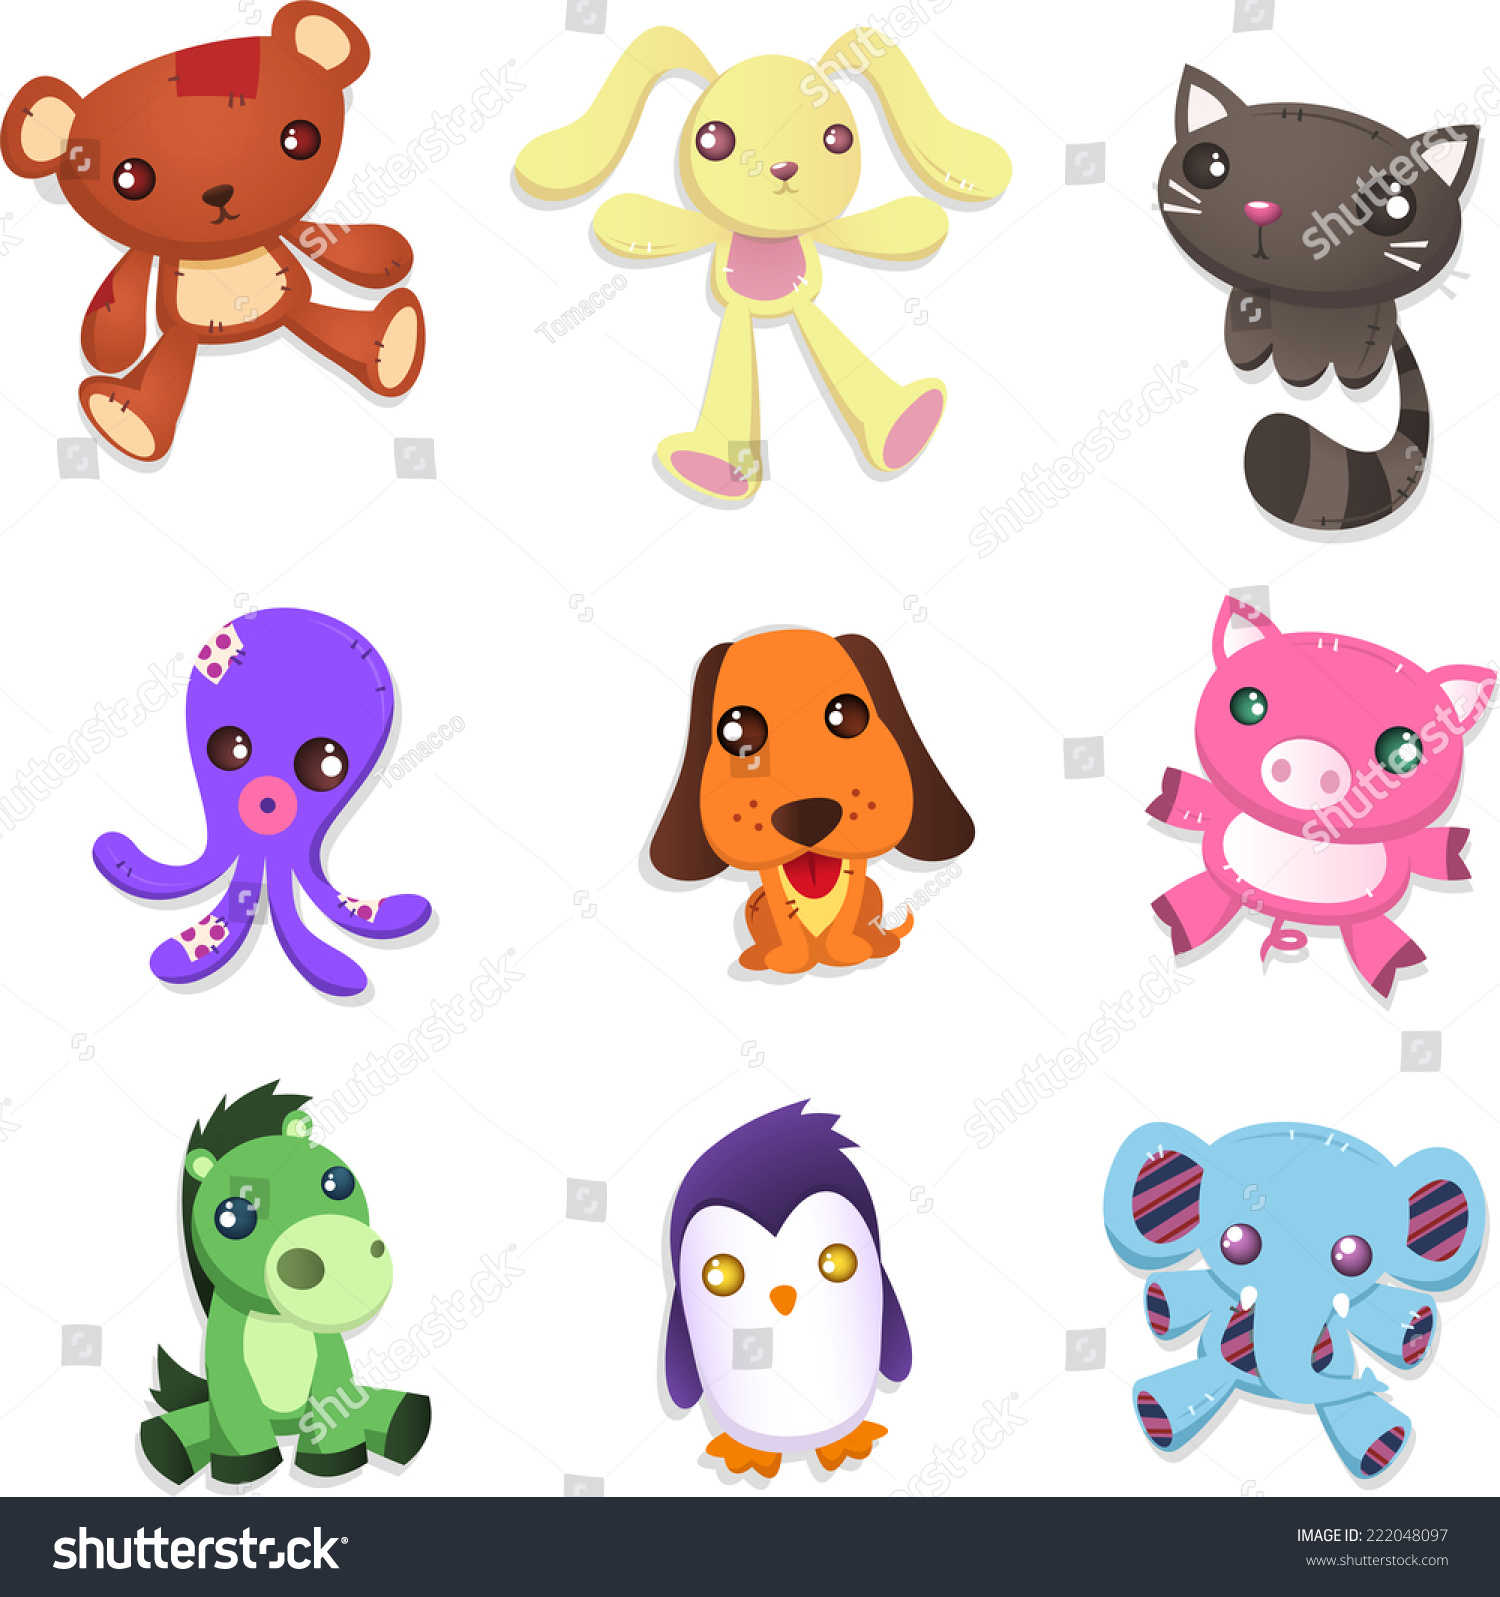 Animals Toys Color : Stuffed animal toy collection includes teddy stock vector